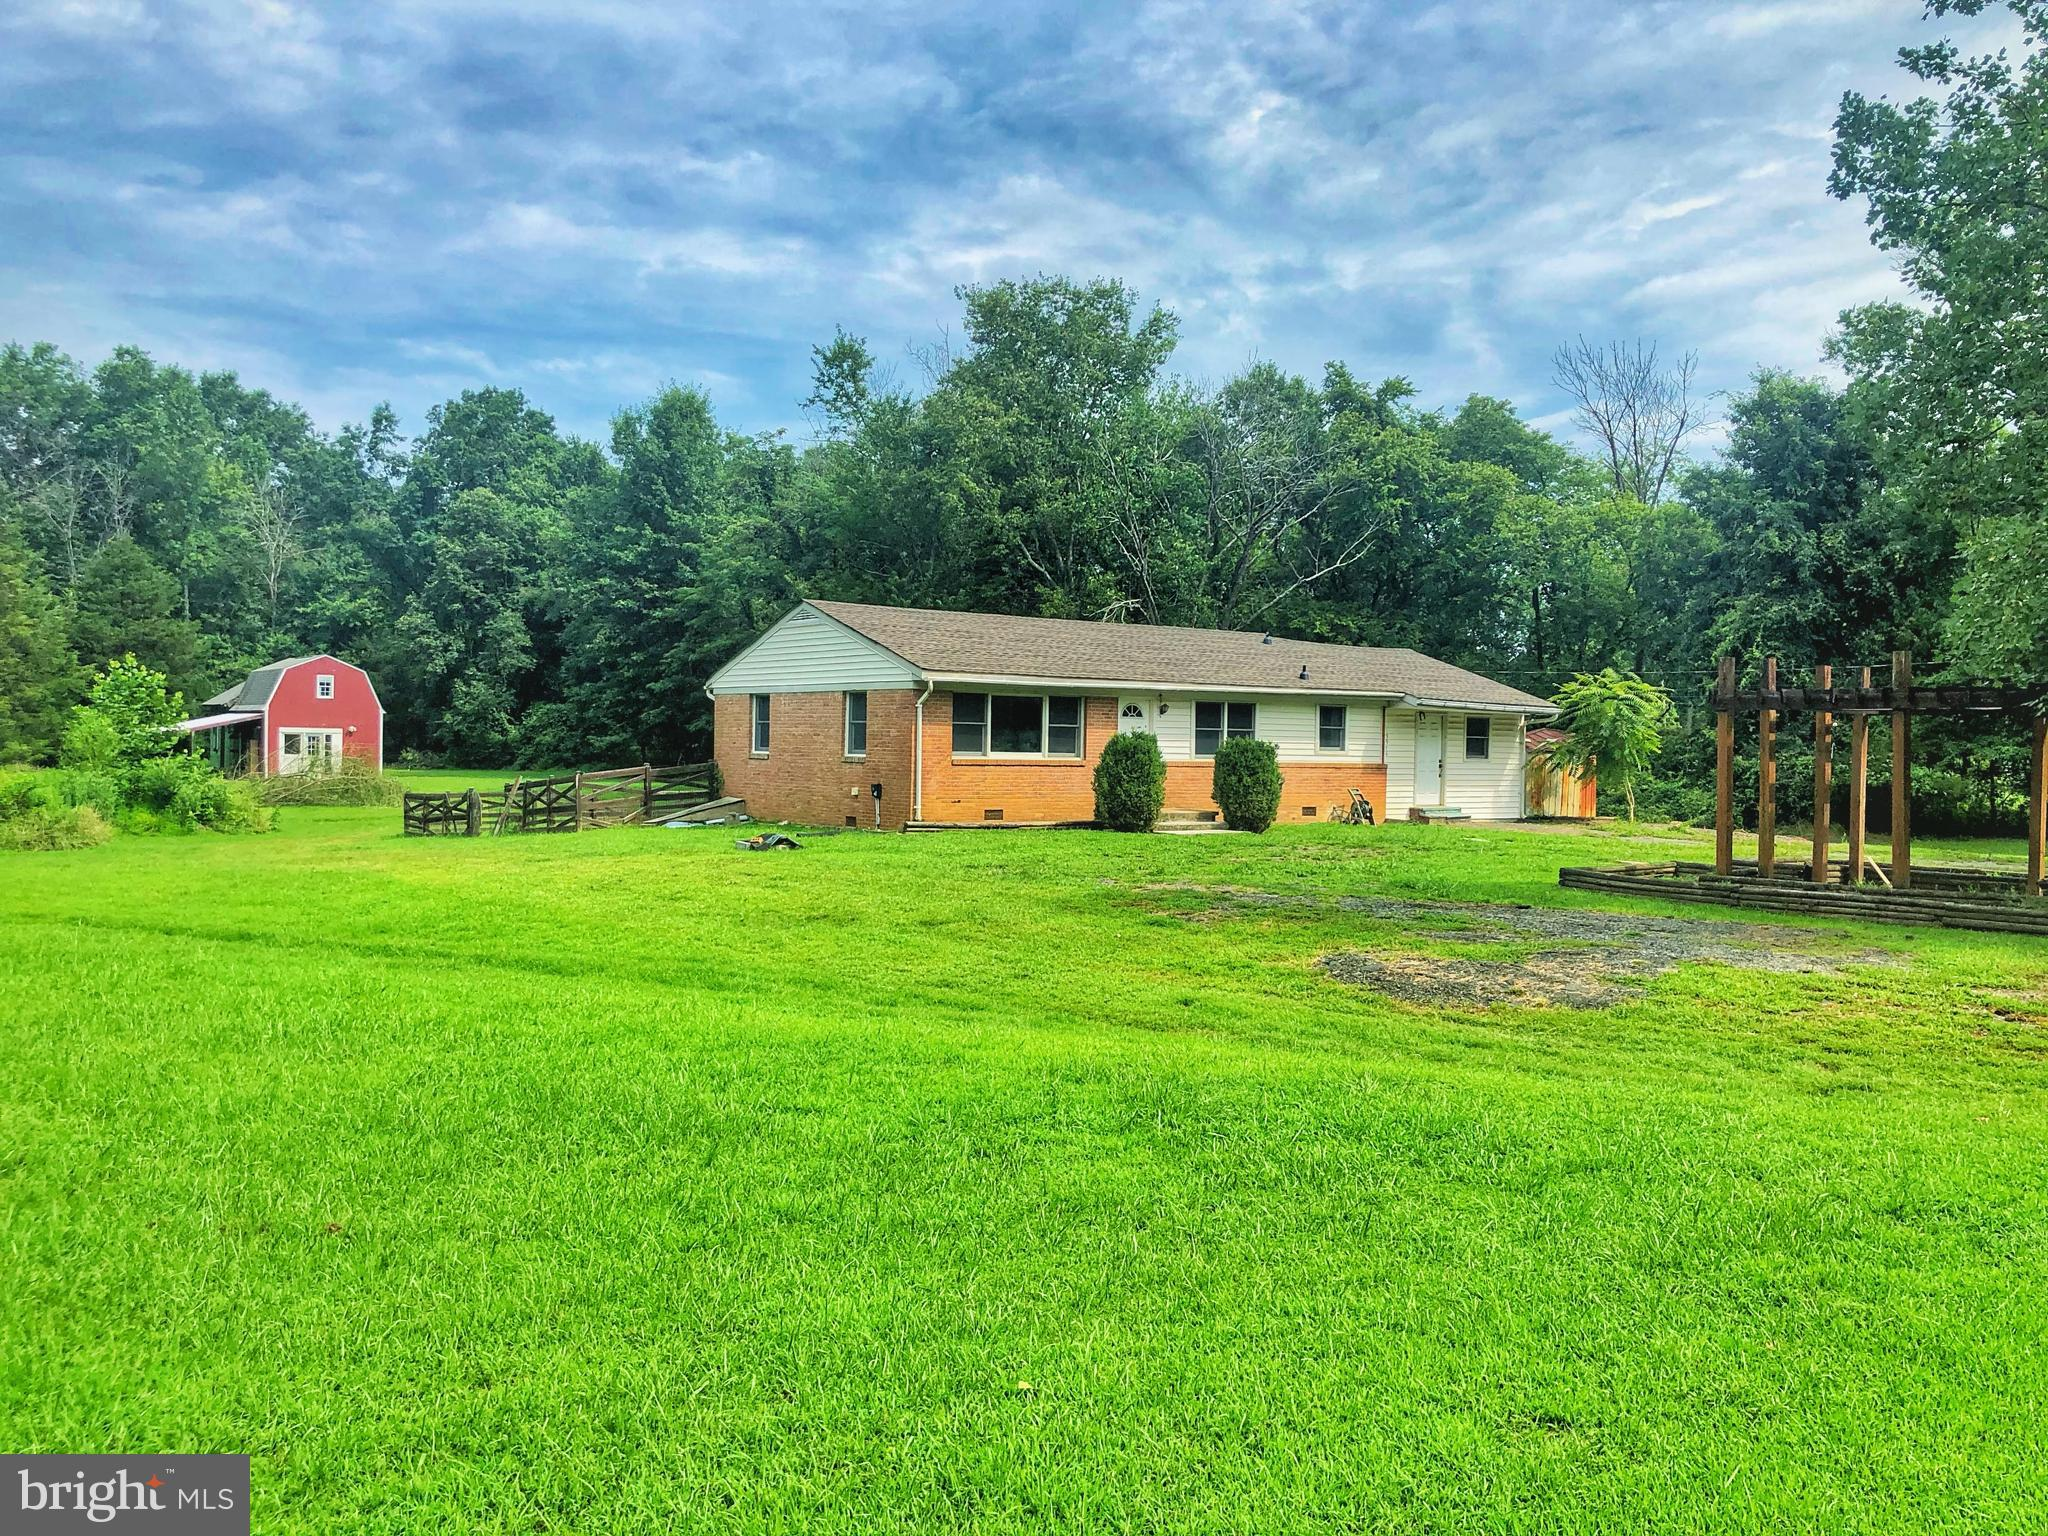 LIVE IN BEAUTIFUL BROAD RUN FARMS W/WATER ACCESS. THIS 3 BEDROOM 2 BATH HOME HAS IT ALL, DECK, PARTL